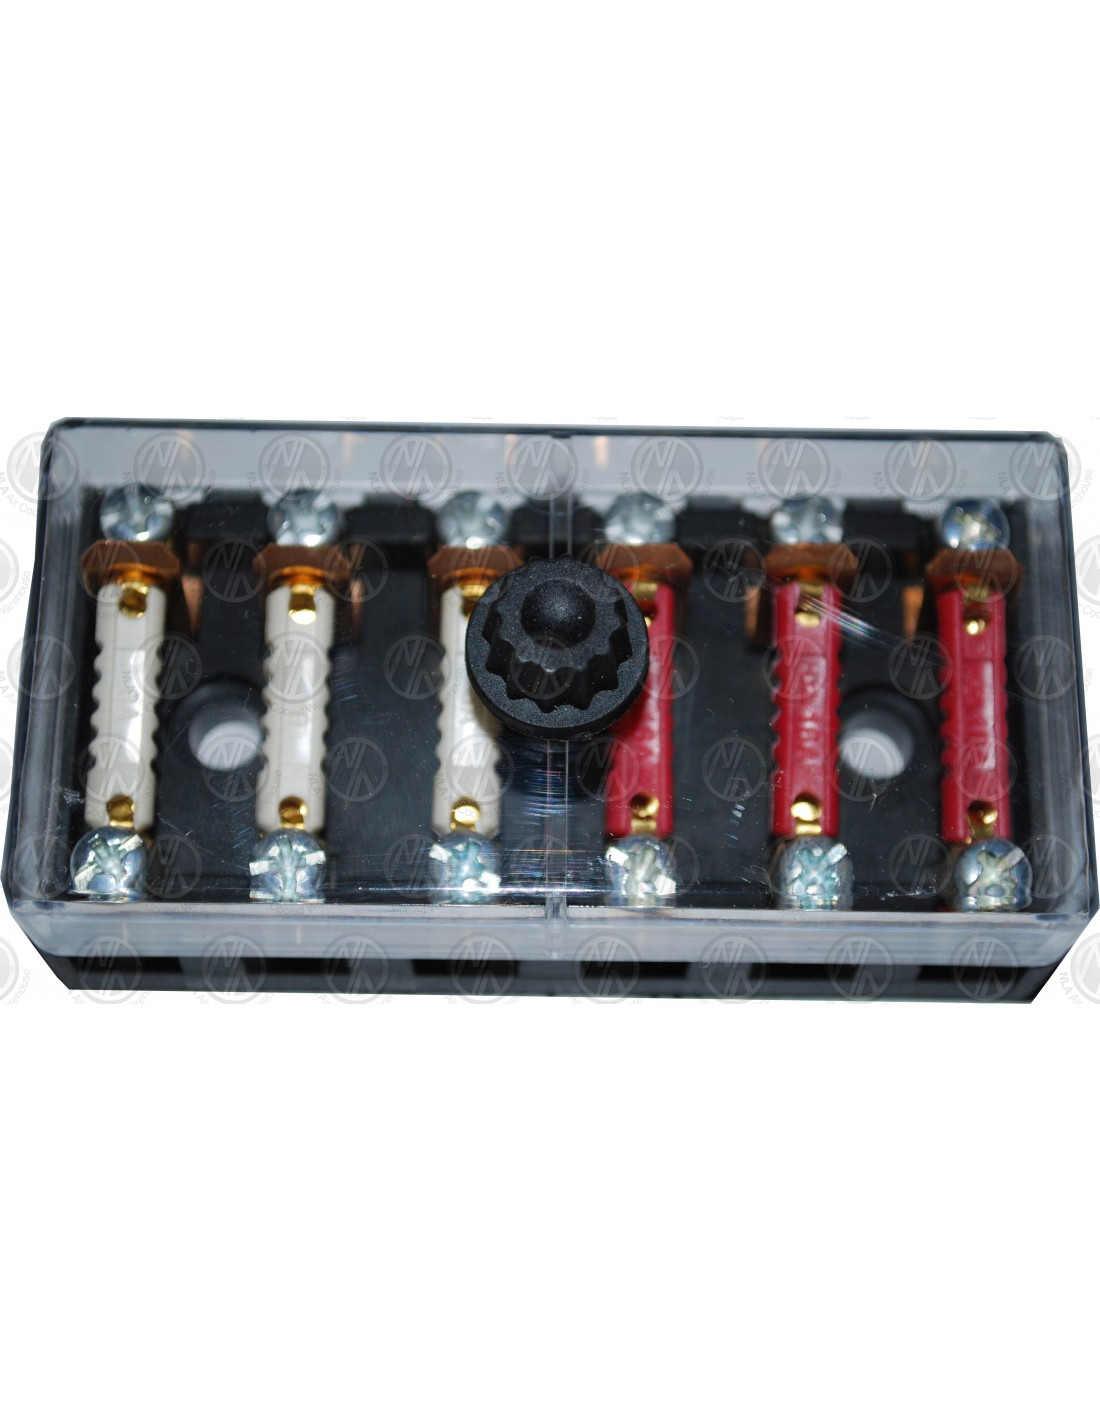 6 way auxiliary fuse box with fuses nla vw parts. Black Bedroom Furniture Sets. Home Design Ideas